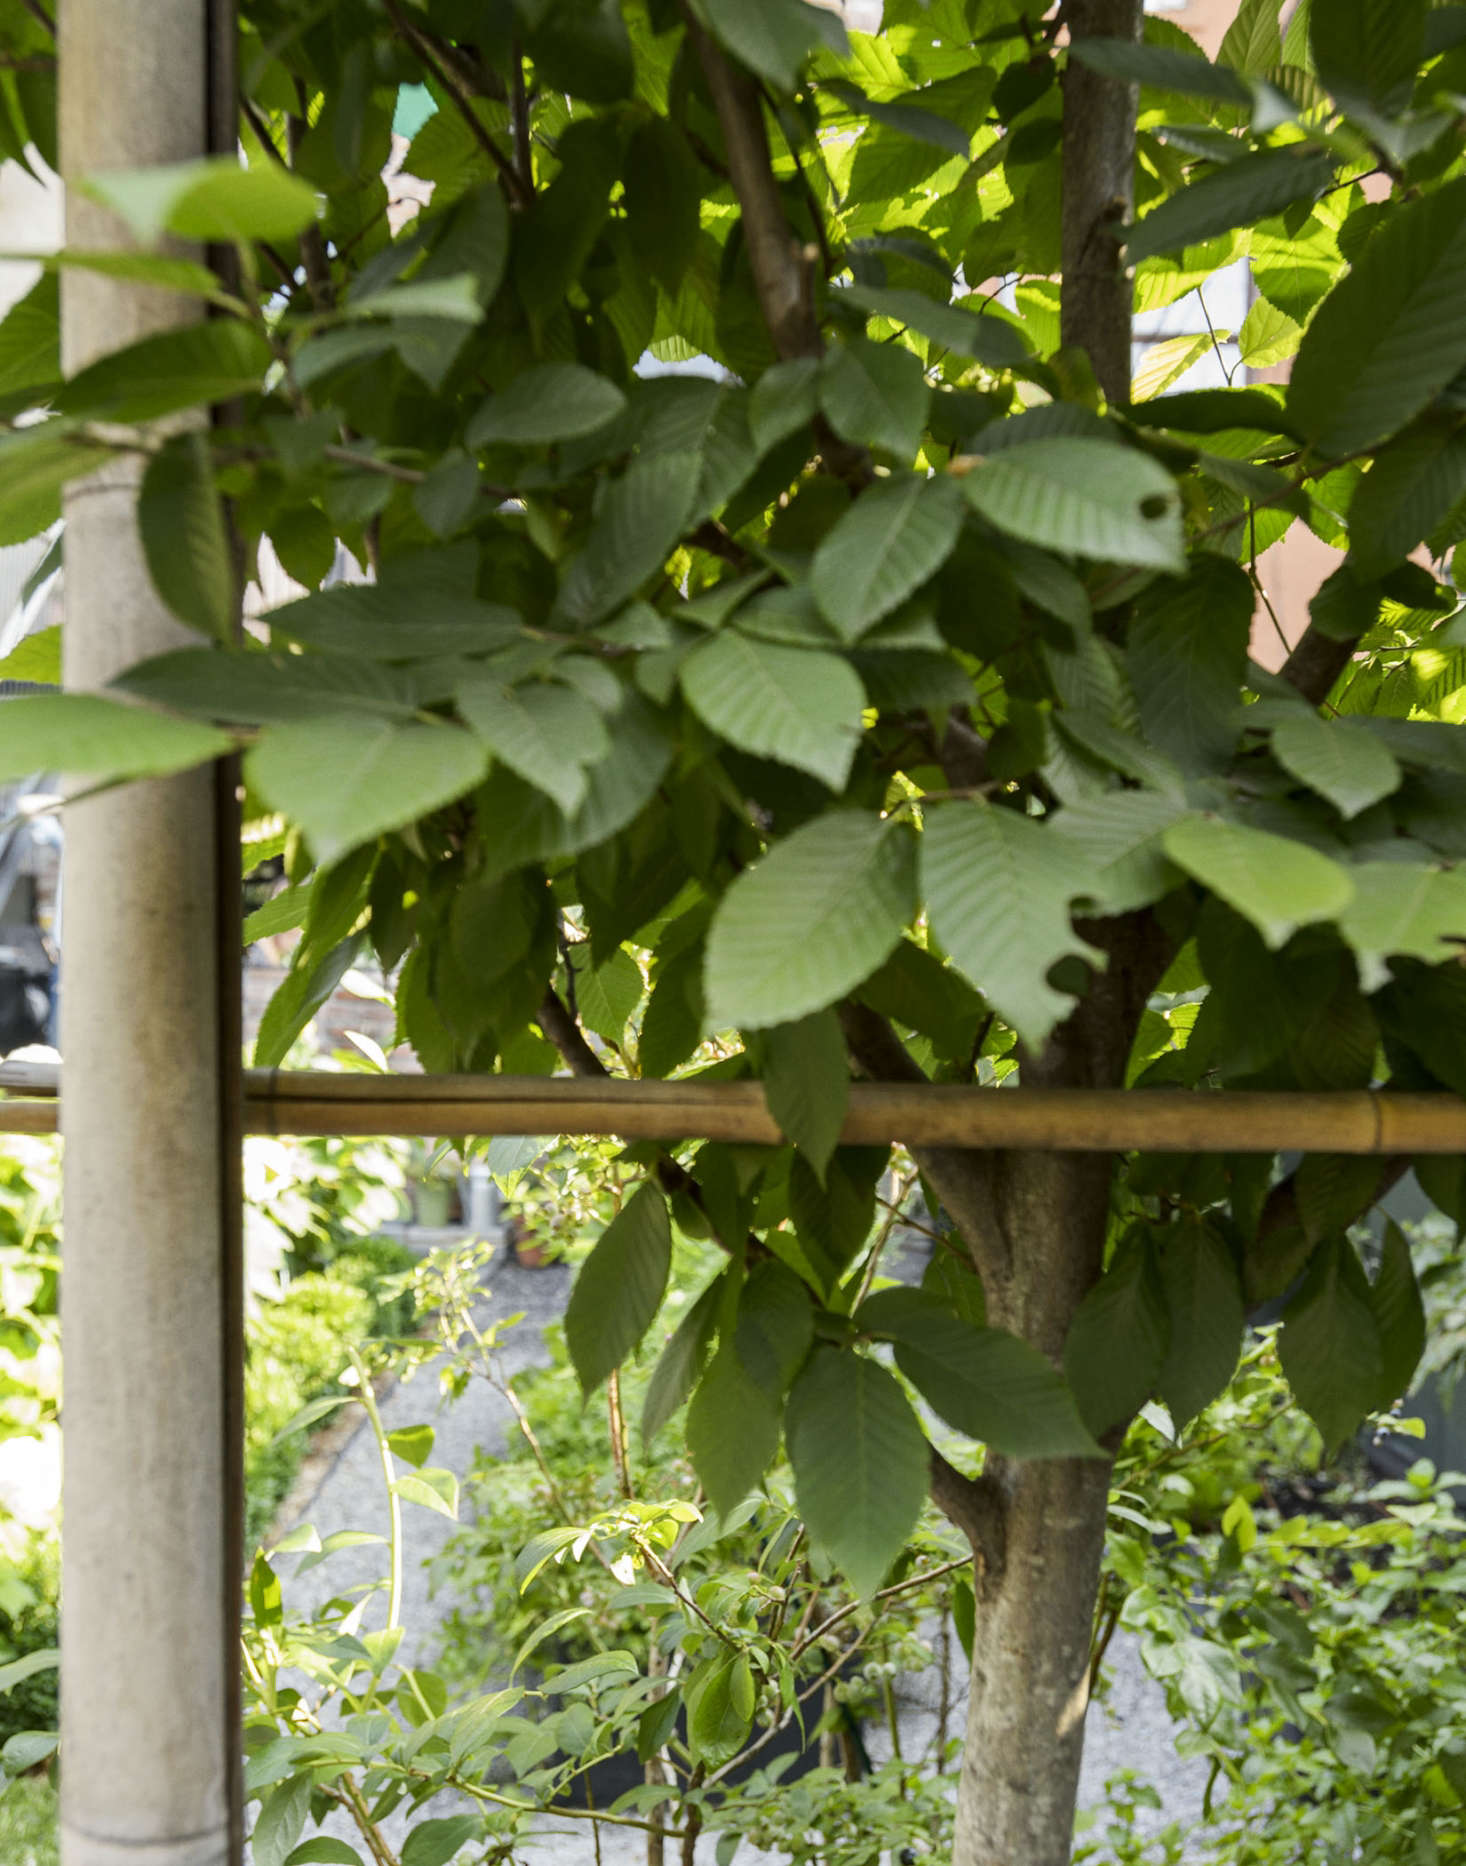 Pleached hornbeams. Photograph by Matthew Williams for Gardenista